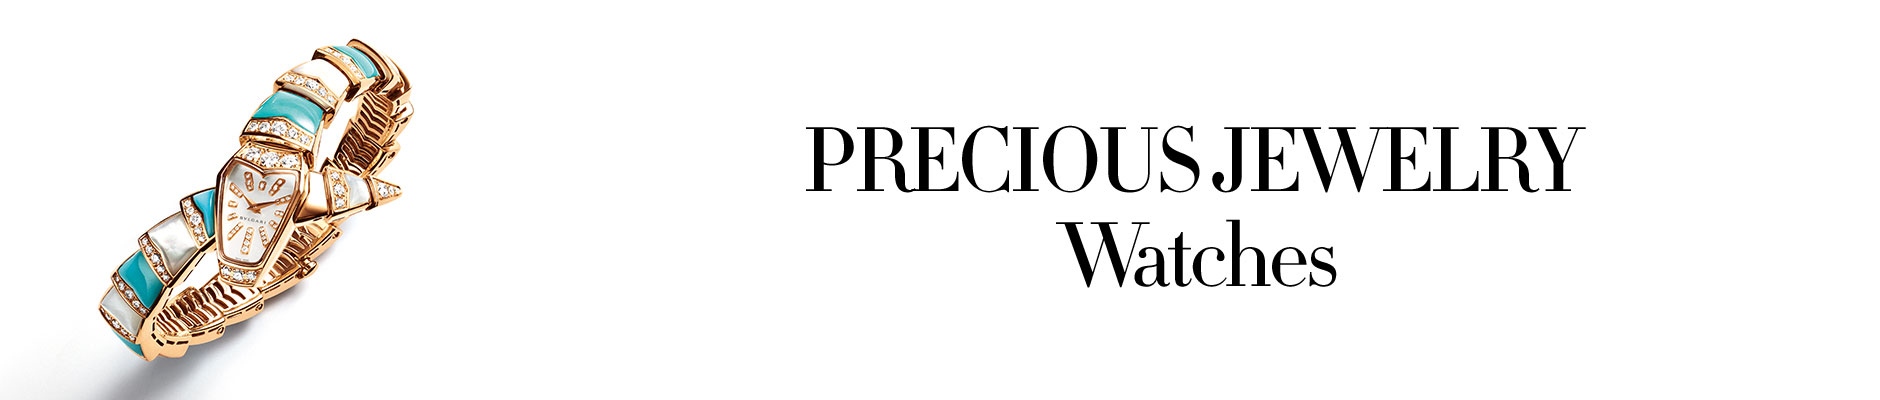 Precious Jewelry - Watches